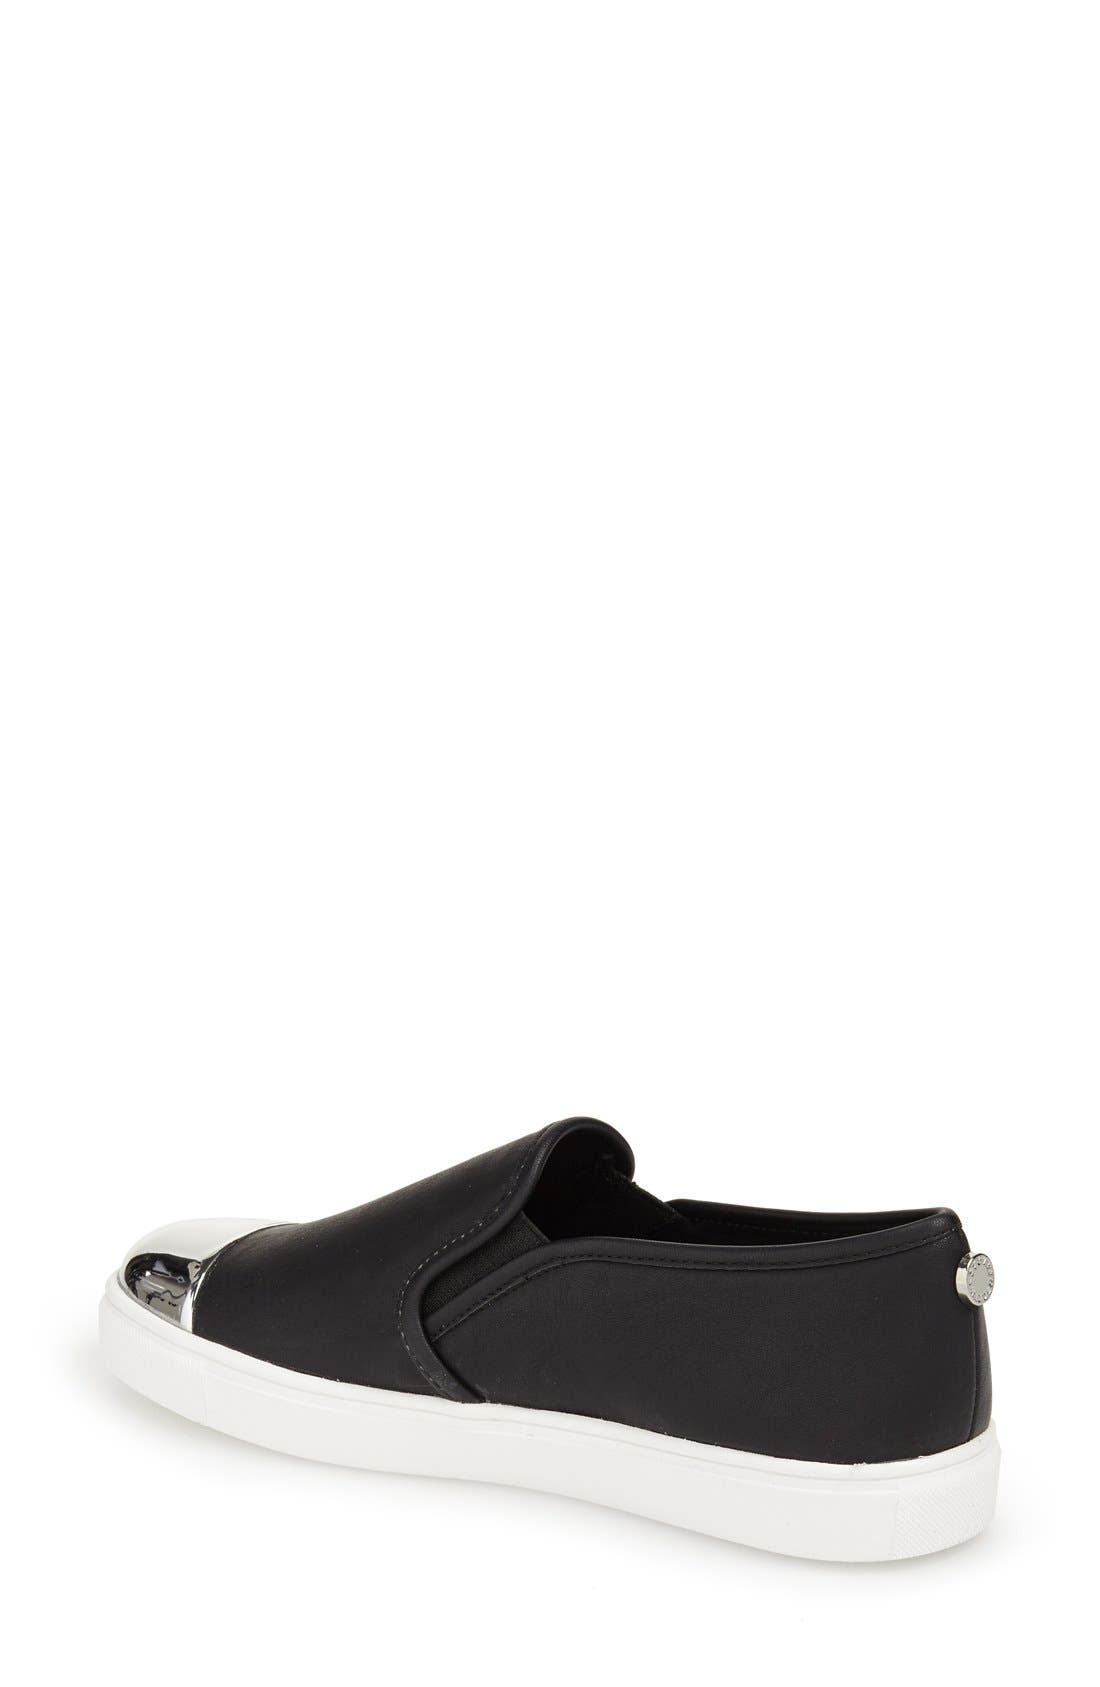 Alternate Image 2  - Steve Madden 'Eleete' Slip On Sneaker (Women)